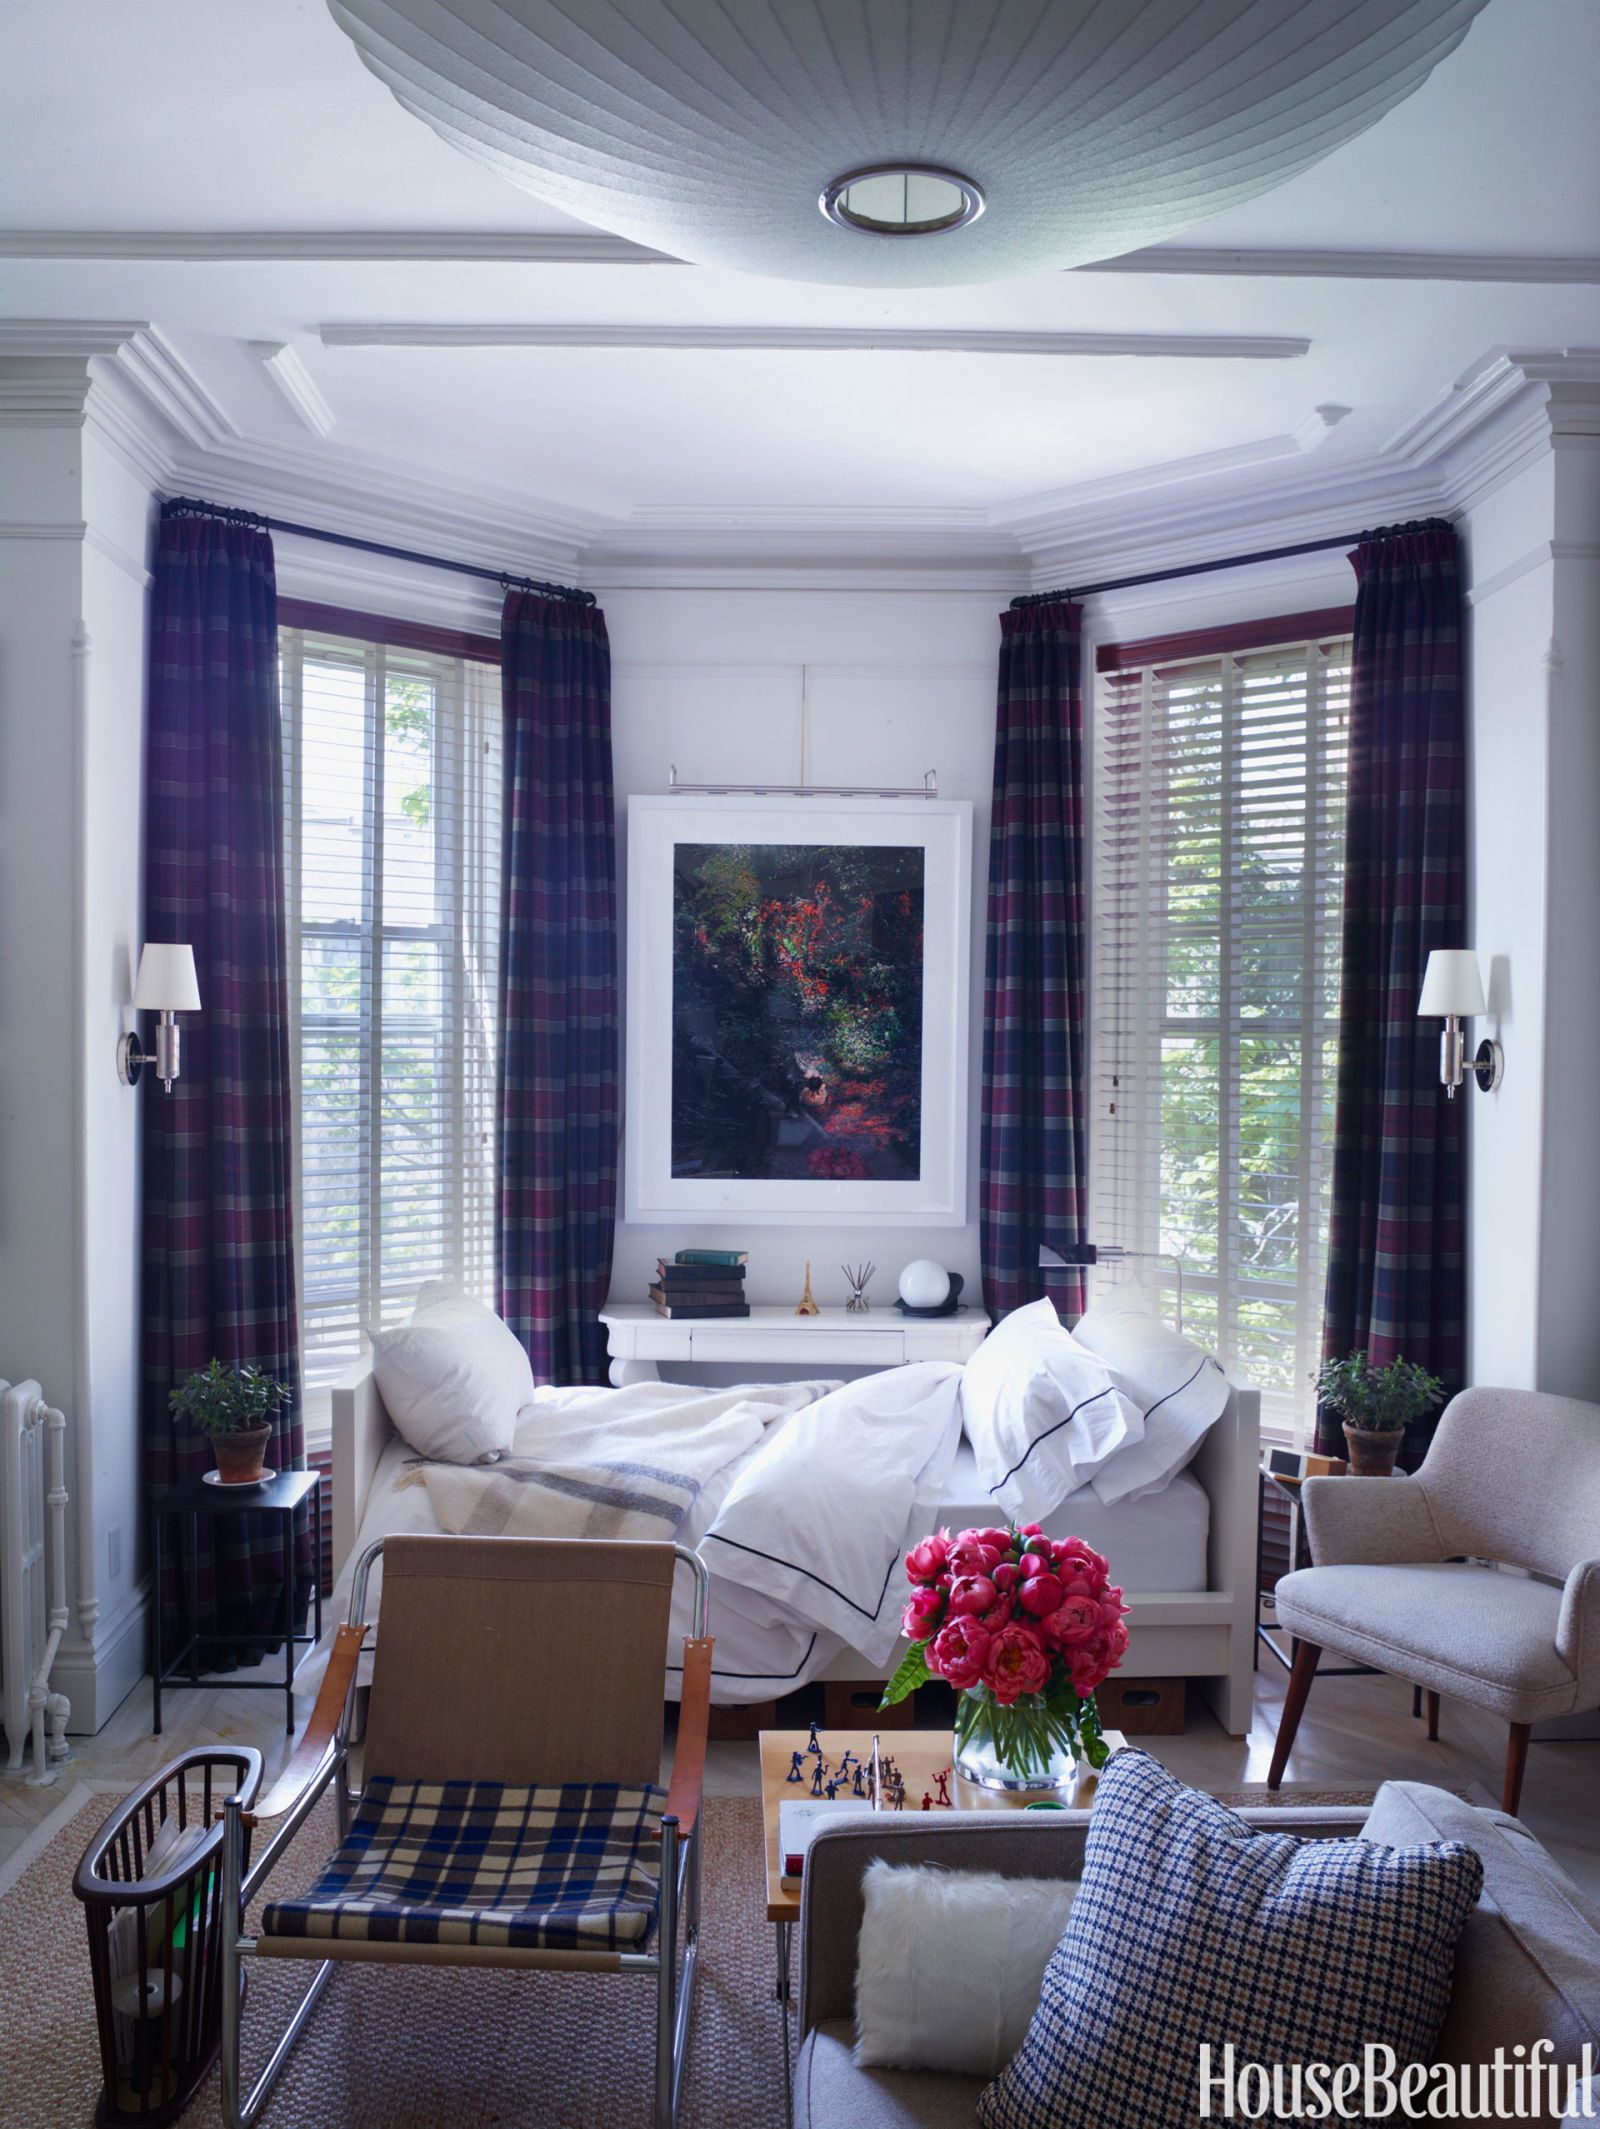 Small Room Design Decorating Ideas For Tiny Rooms